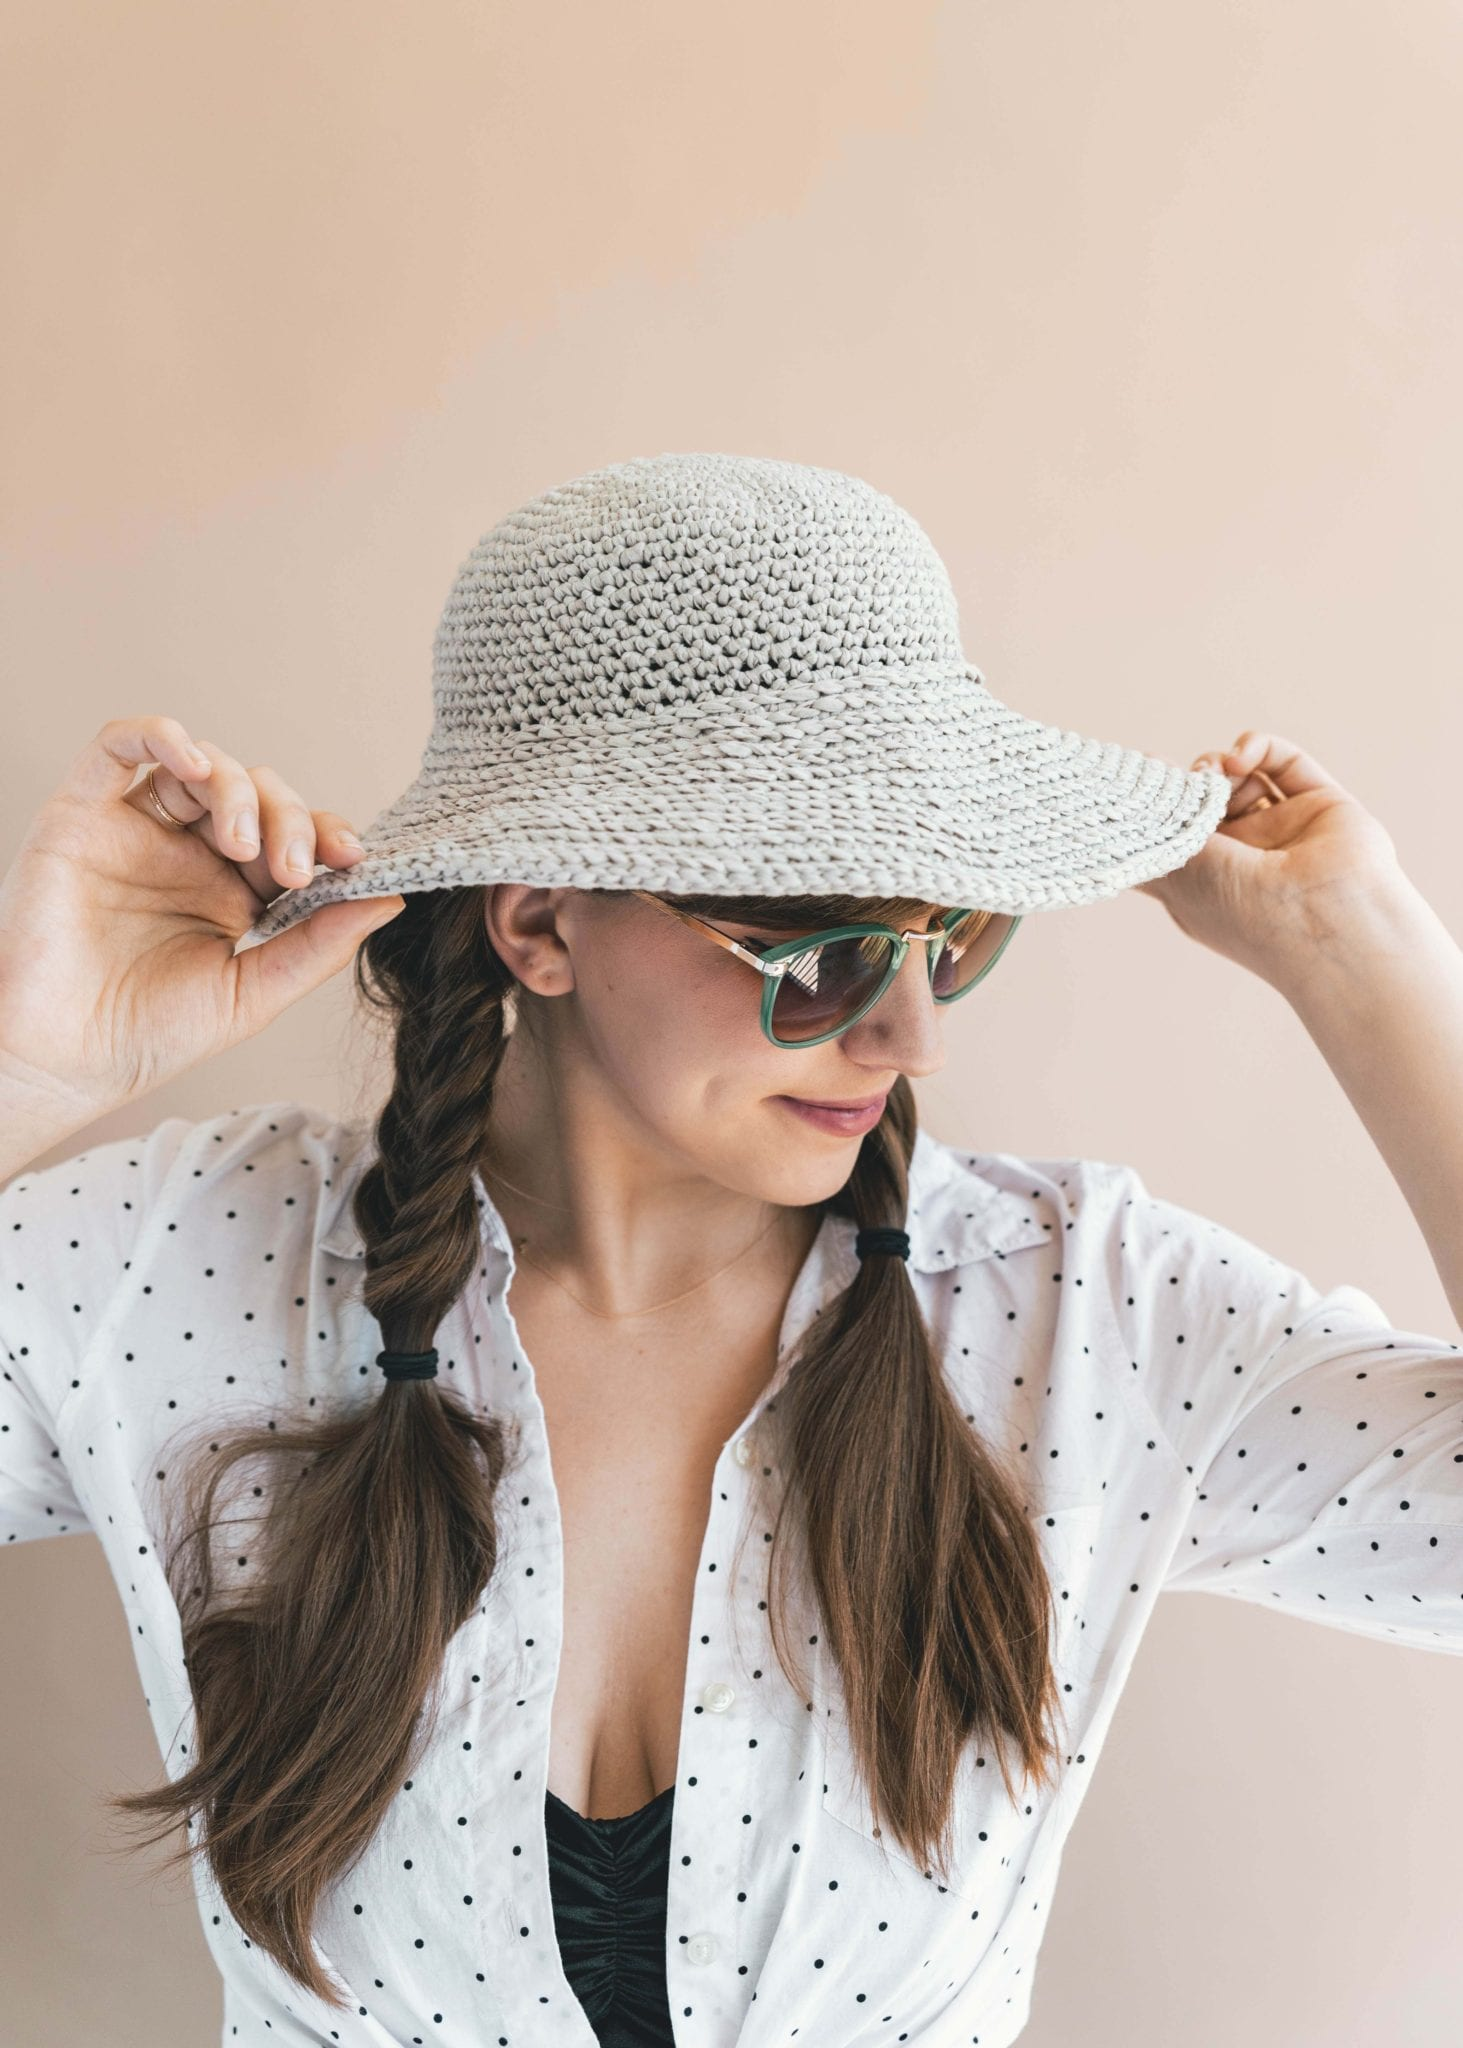 The weather is warming and I ve got summer on my mind – so I had to make a  chic accessory for sunny days  The Crochet June Sun Hat! 1eb1ac51af4